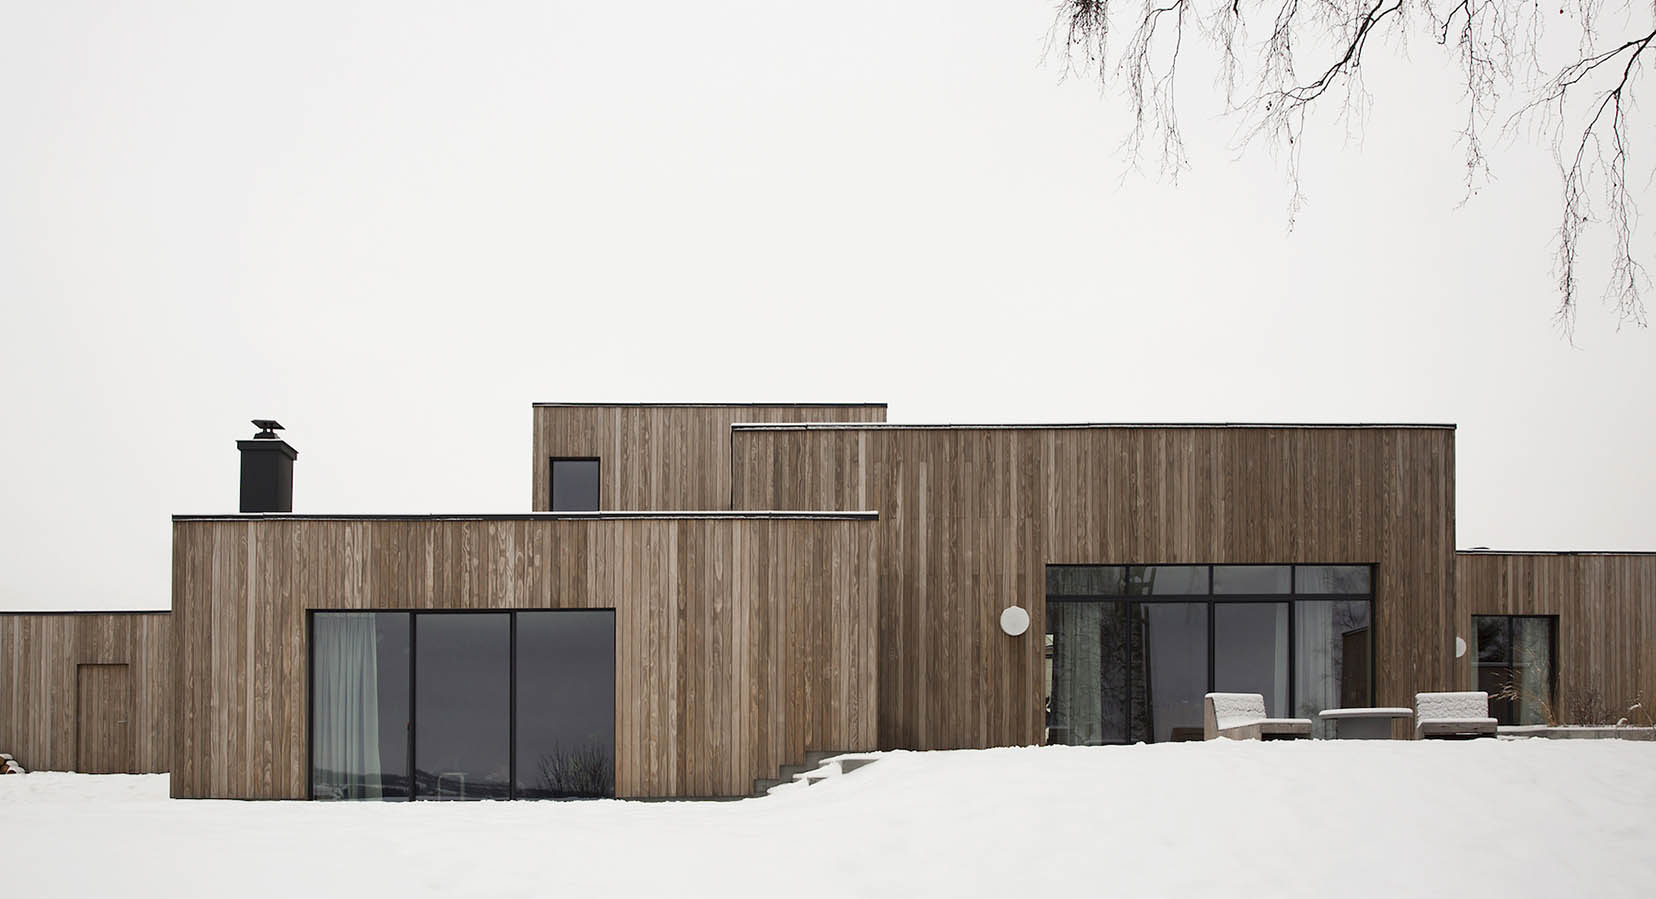 Norm Architects Design The Gjøvik House To Be The 'Epitome Of Hygge'